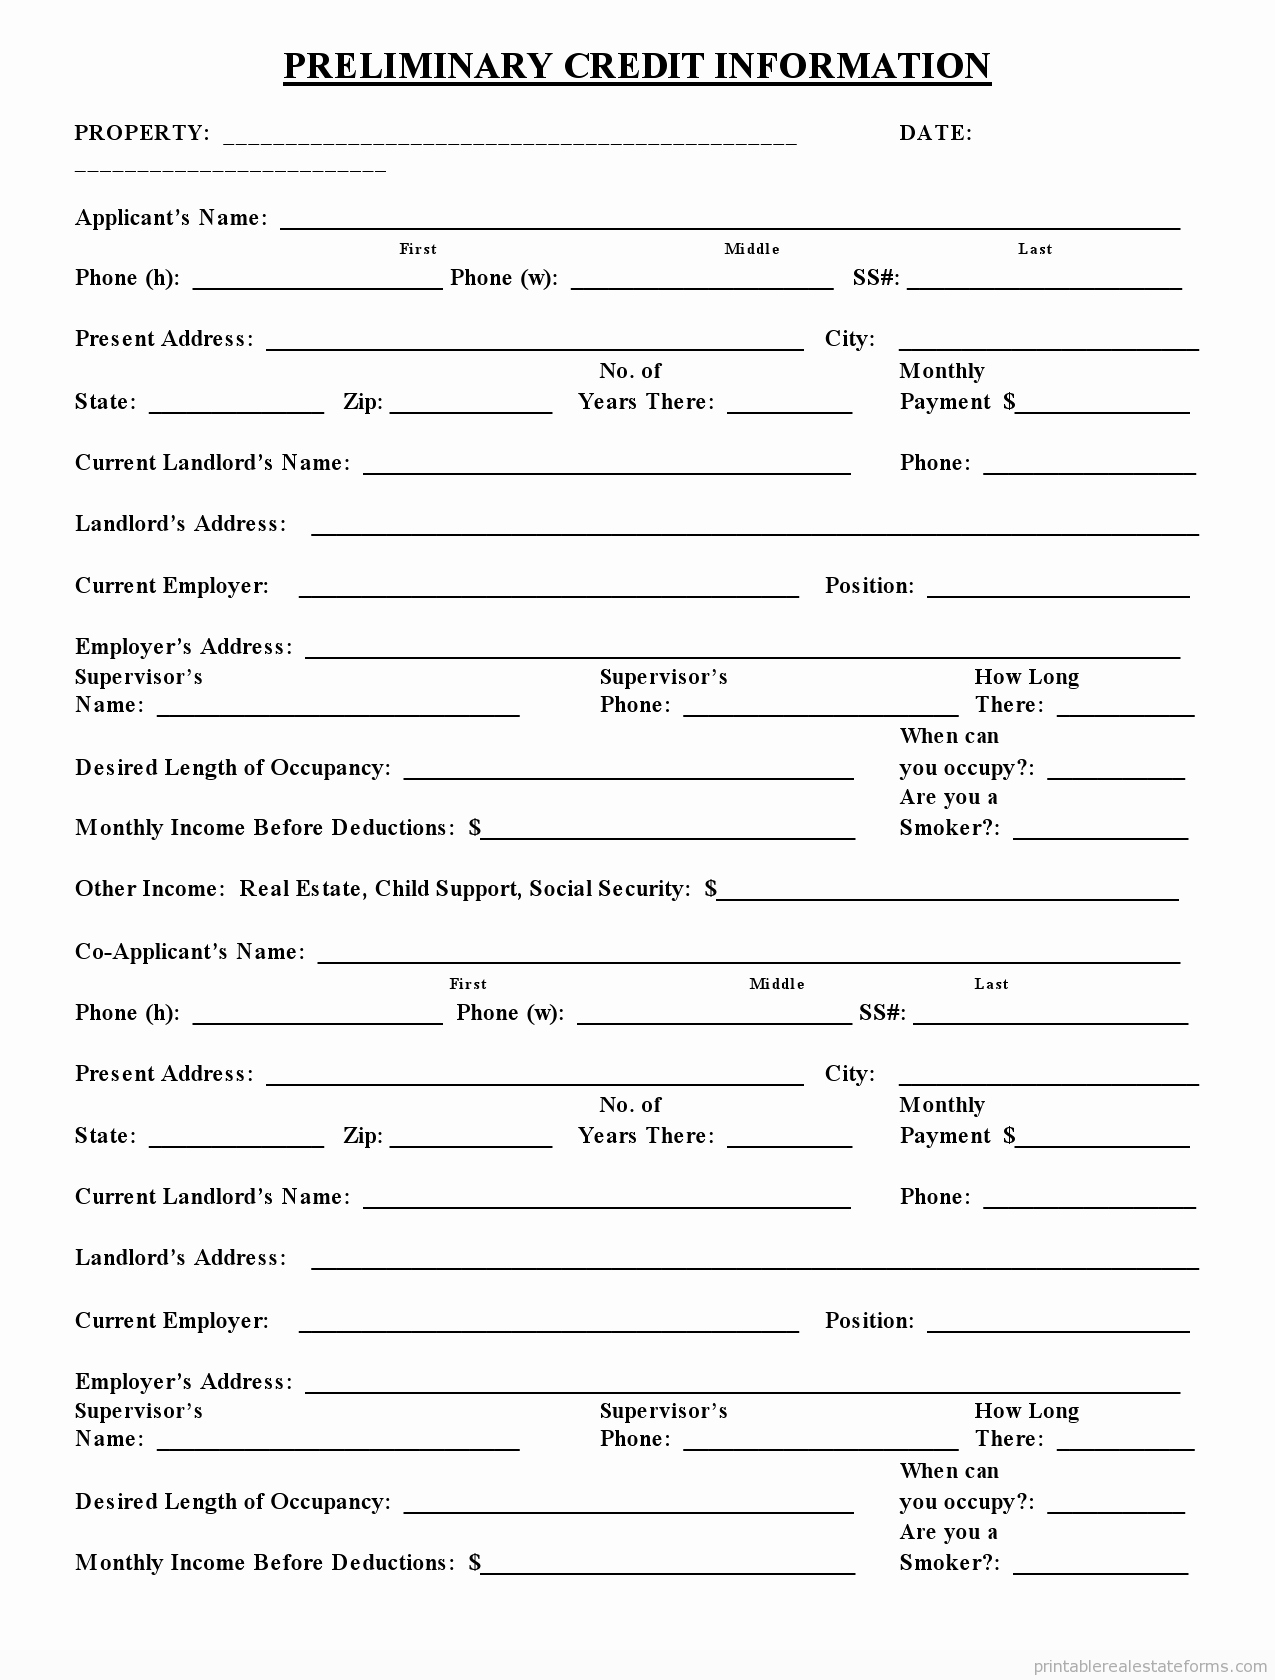 Credit Application form Pdf Lovely Free Printable Preliminary Credit Application form Pdf